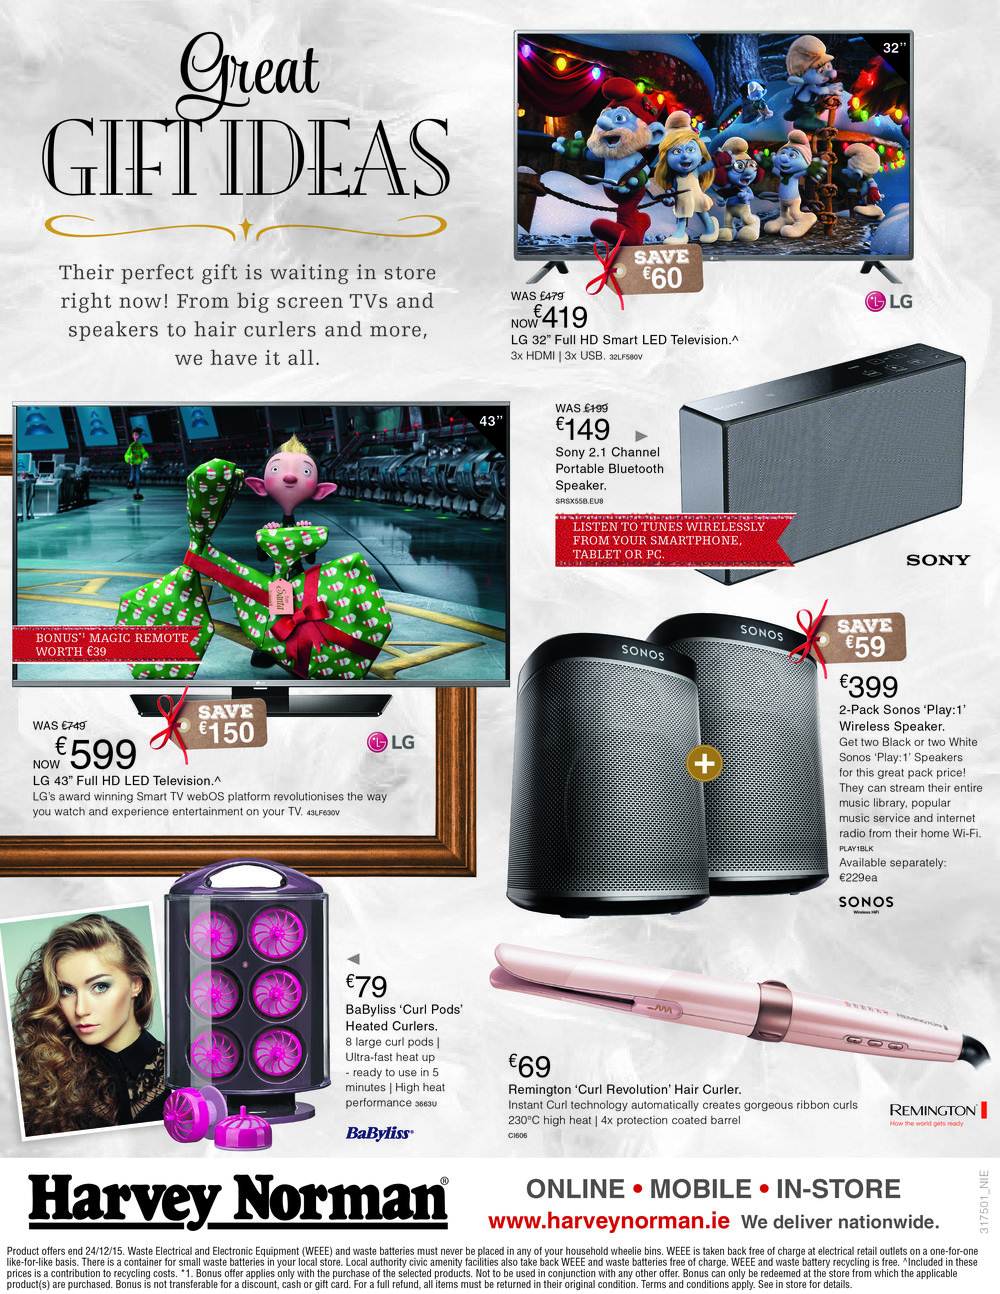 Xmas Campaign One-Page Ad